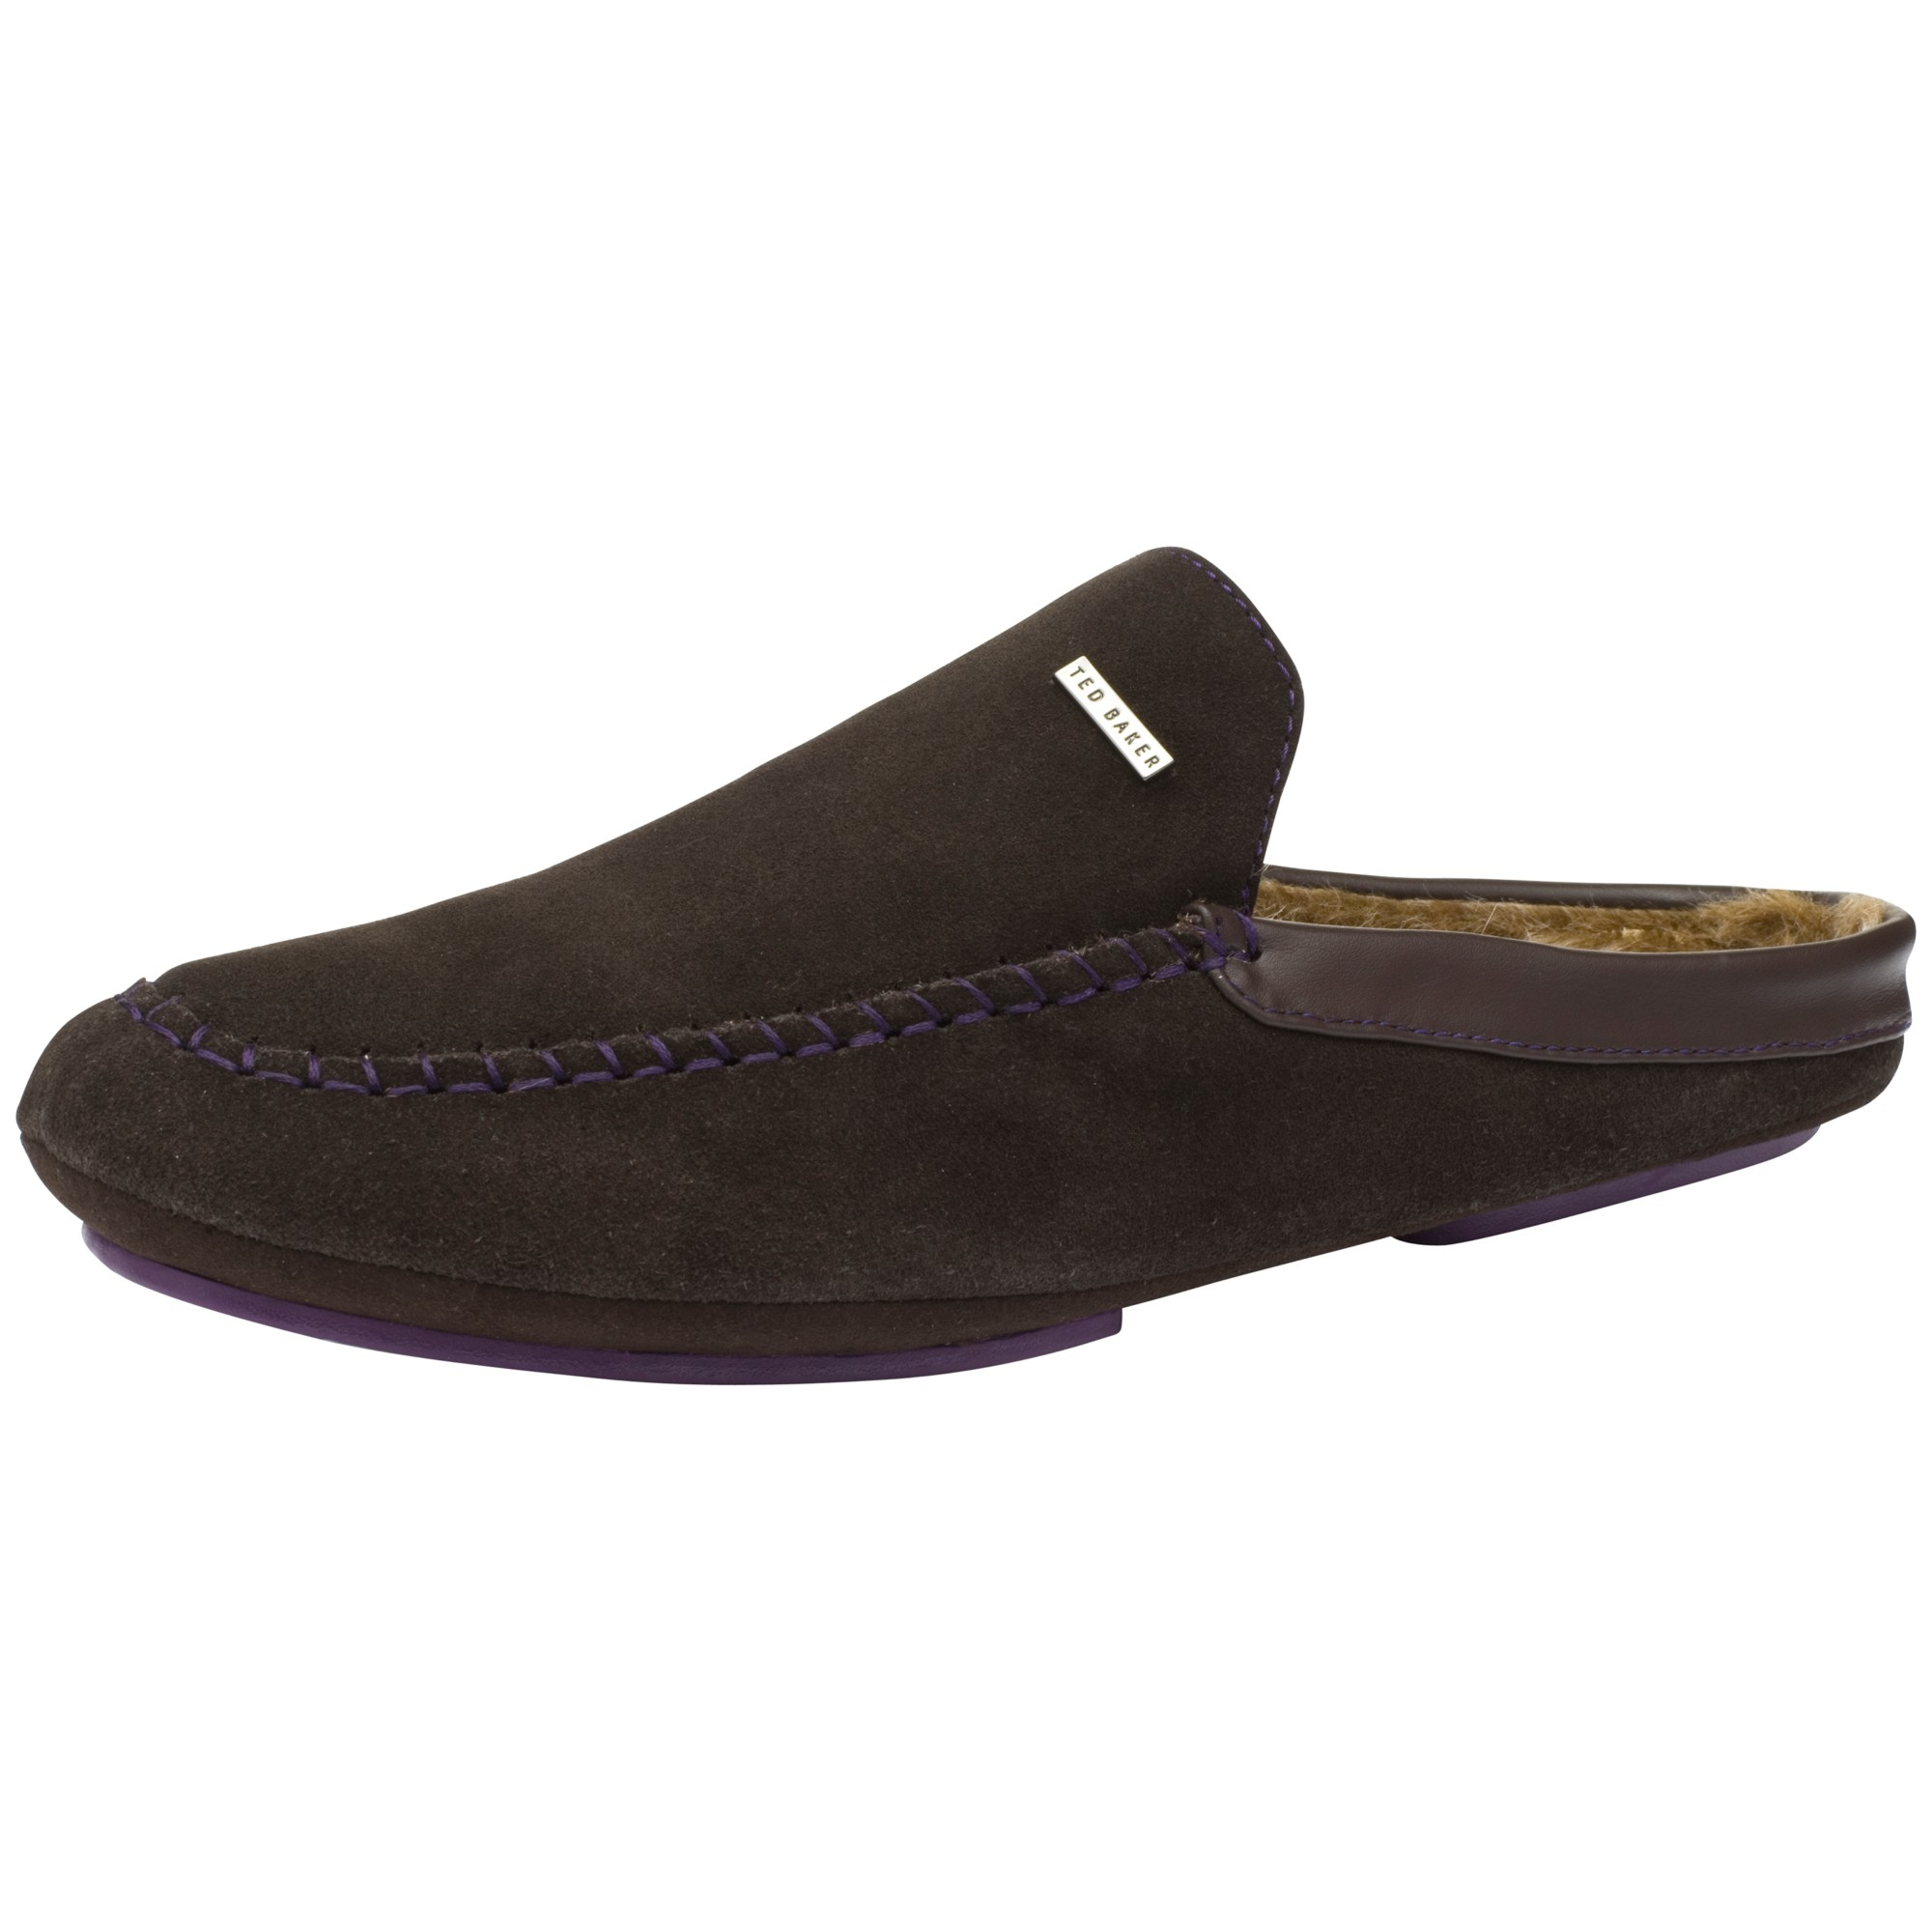 3e6bae7a1 Ted Baker Parkor Mule Slippers in Brown for Men - Lyst